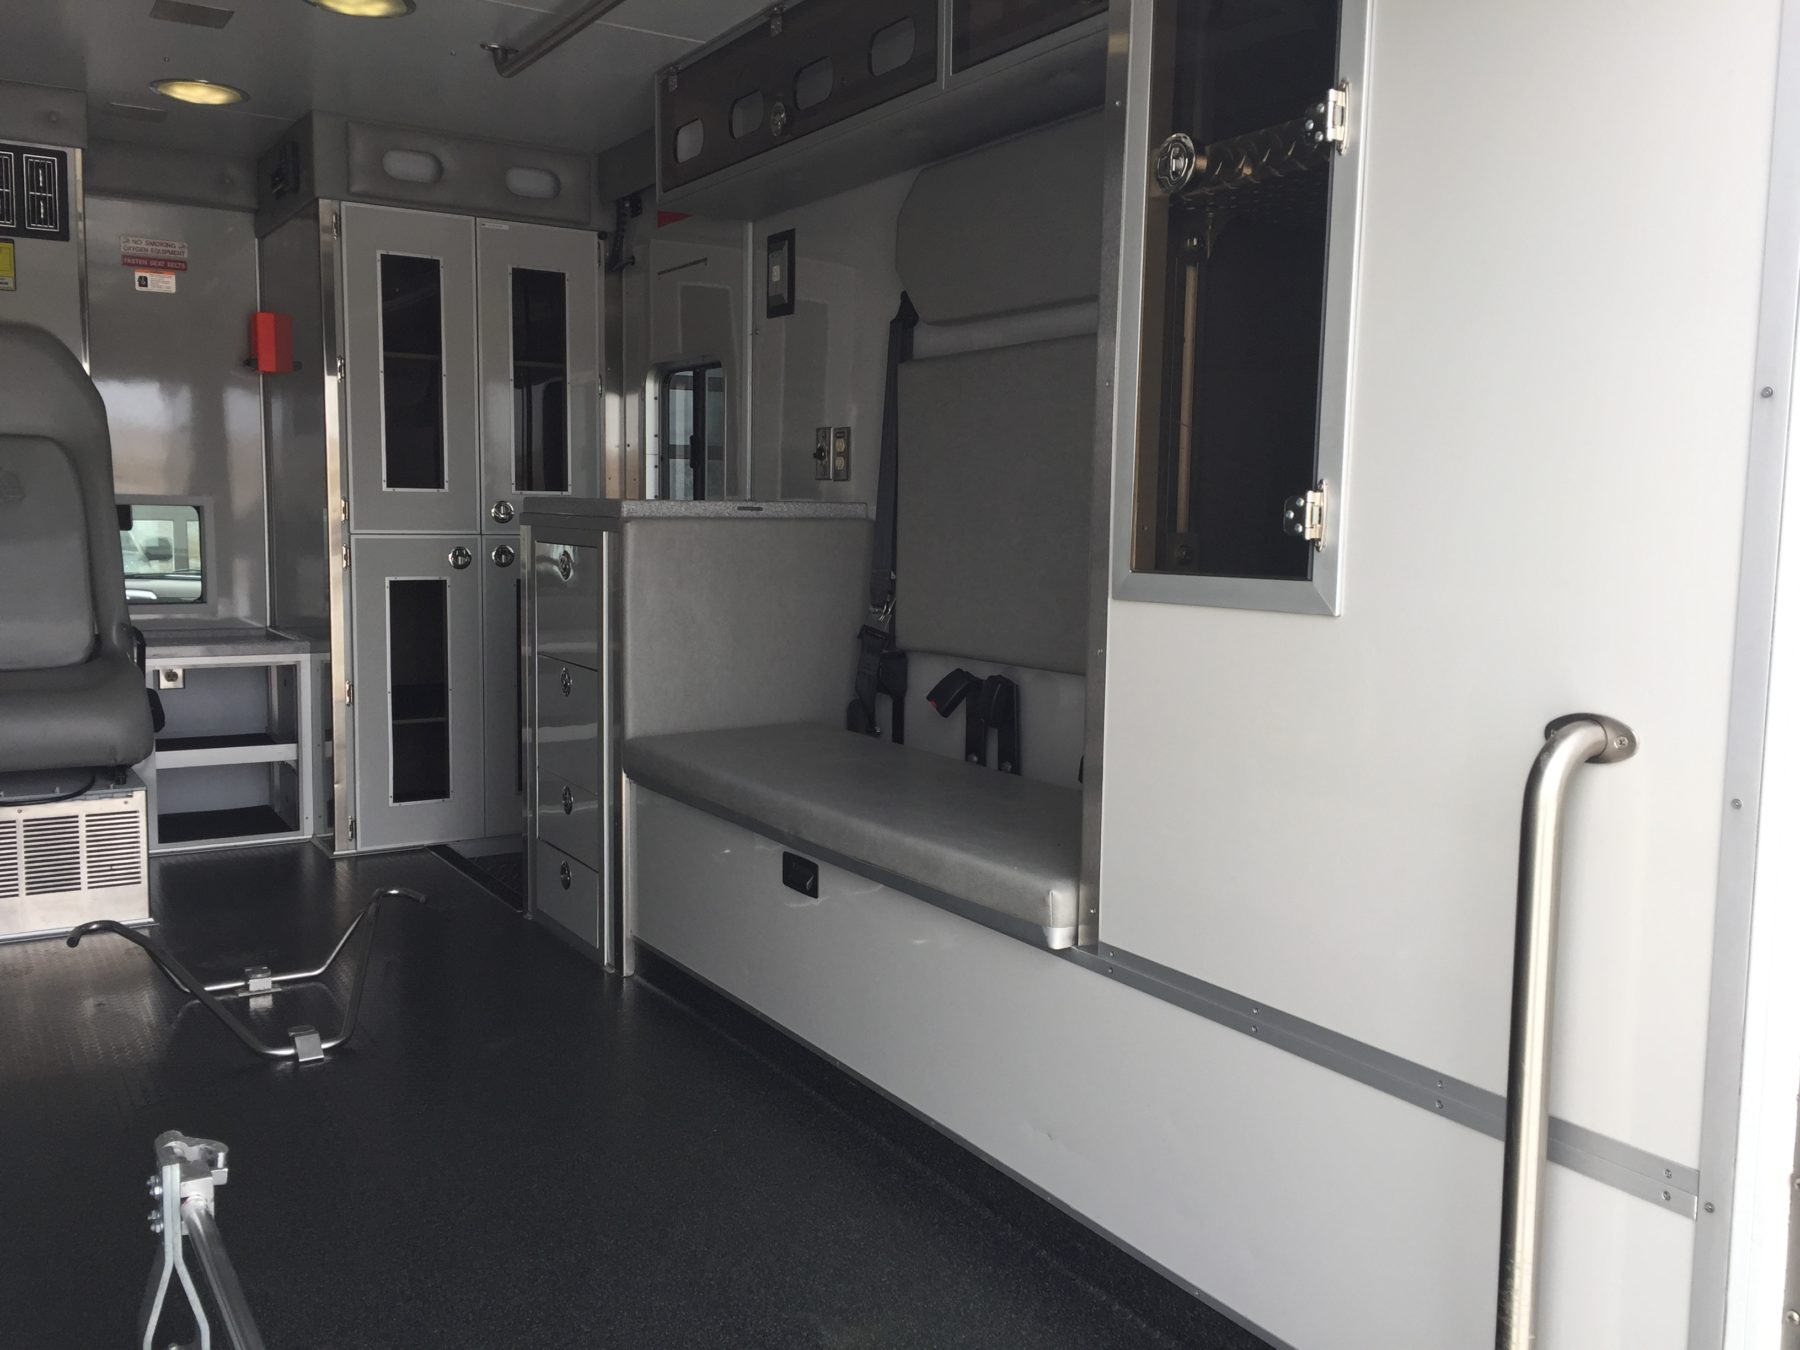 2012 Dodge 4500 Heavy Duty Ambulance For Sale – Picture 14